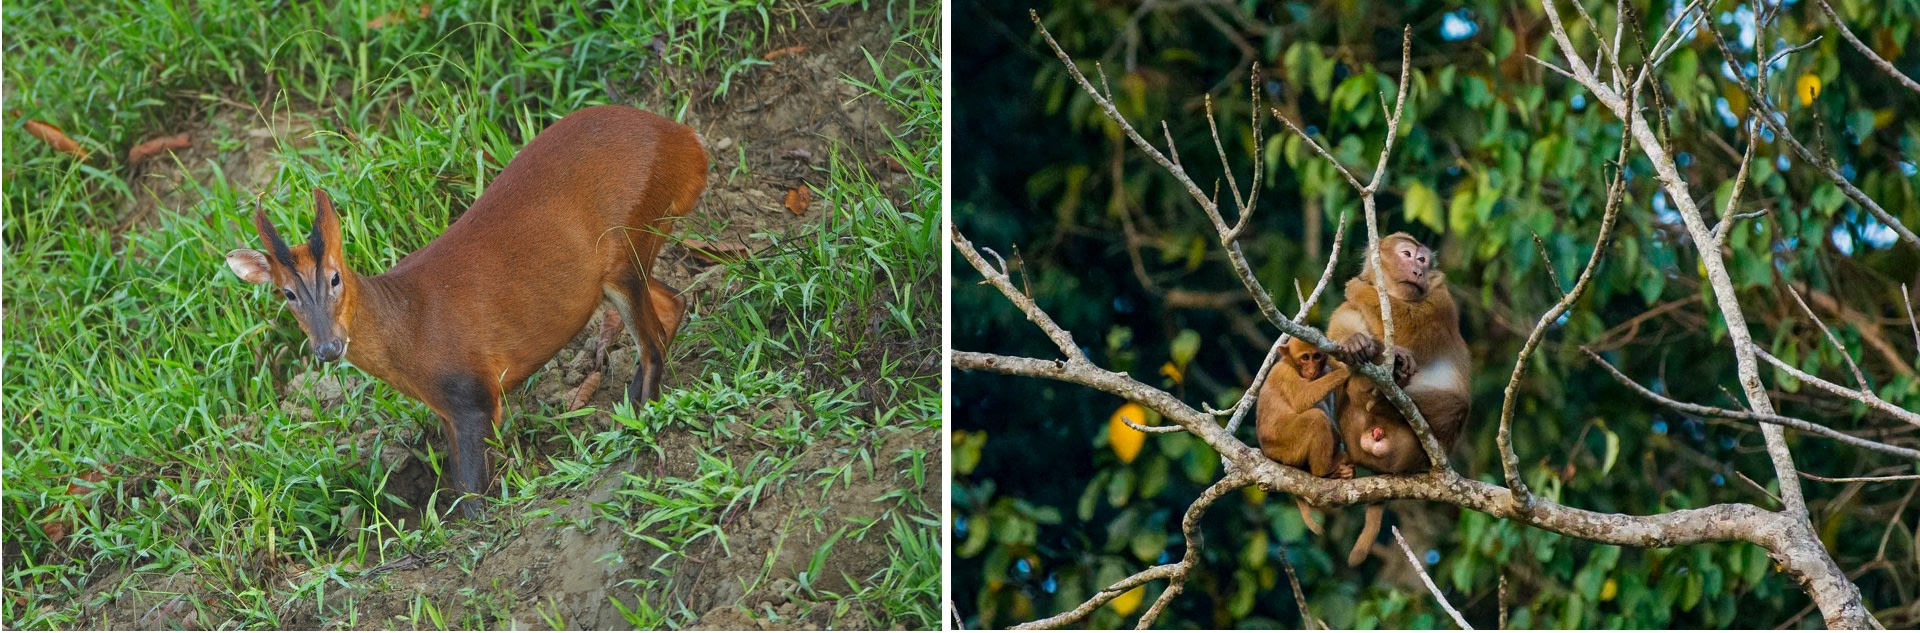 In a forest this lush, sound can be a great guide to spotting animals. Keep your ears cocked for the distinctive call of the barking deer, and the quieter Assamese macaque. Photos: Dhritiman Mukherjee (left), Sutirtha Lahiri (right)